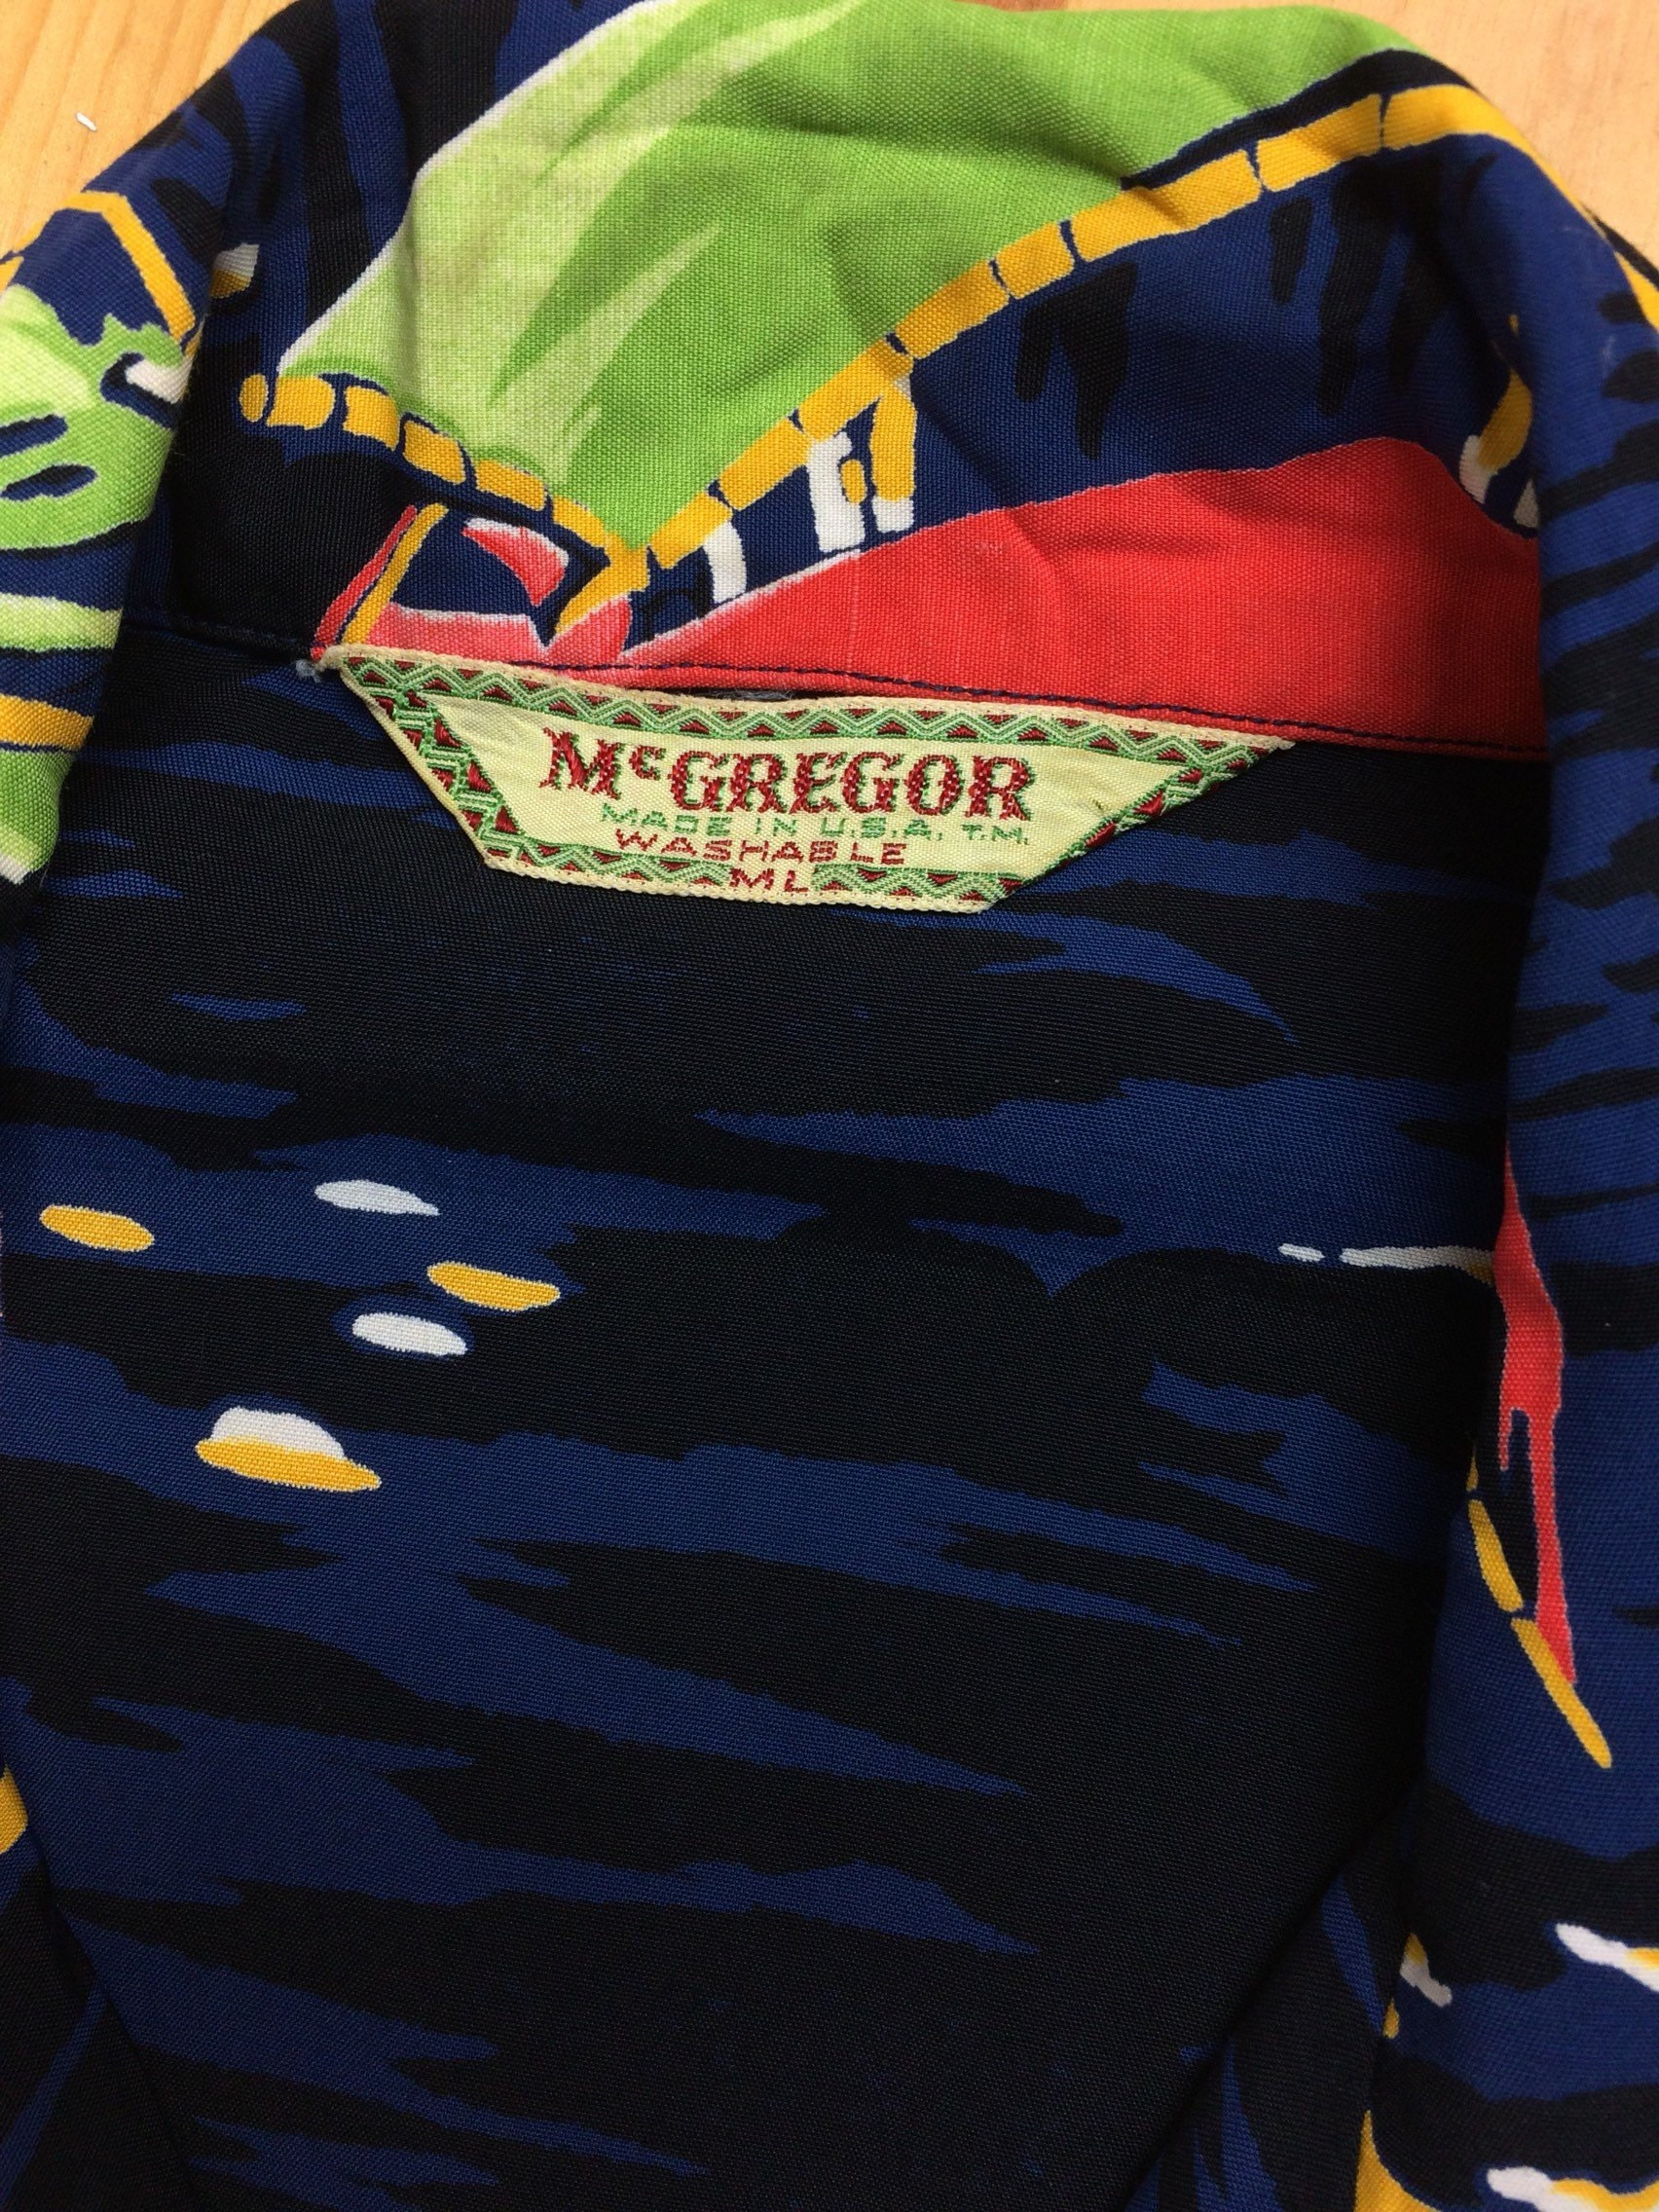 vintage McGregor Hawaiian shirt label from 1950